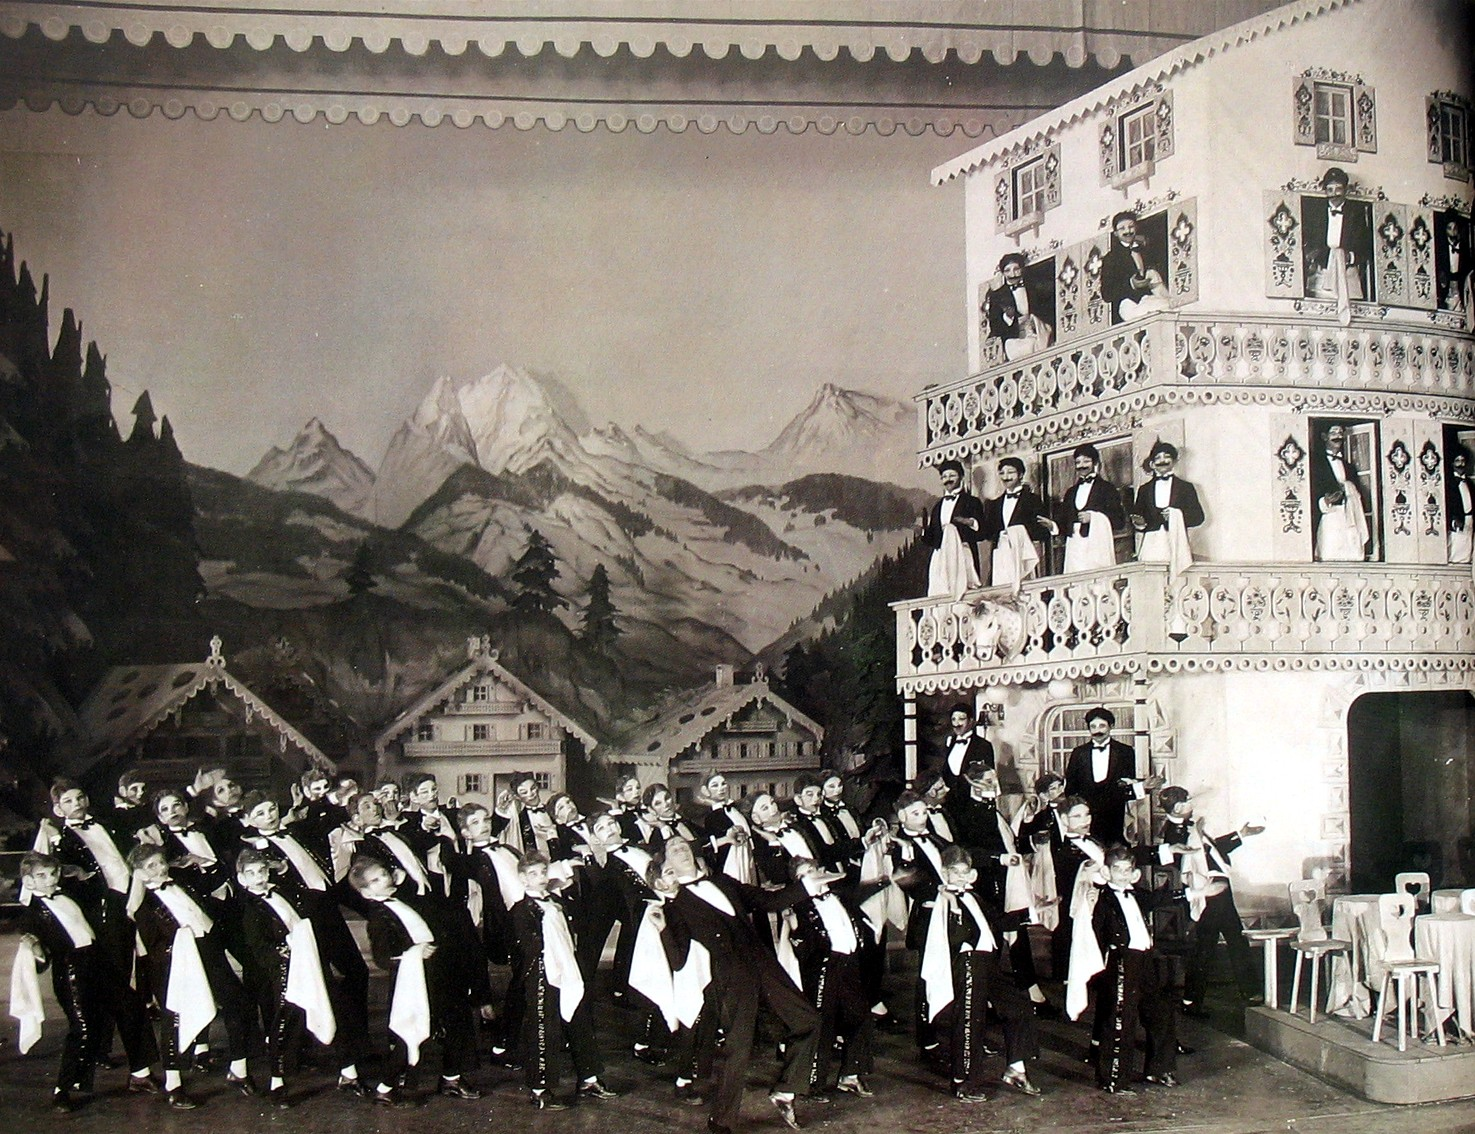 Waiters on parade: the grand marching scene from London, 1931.